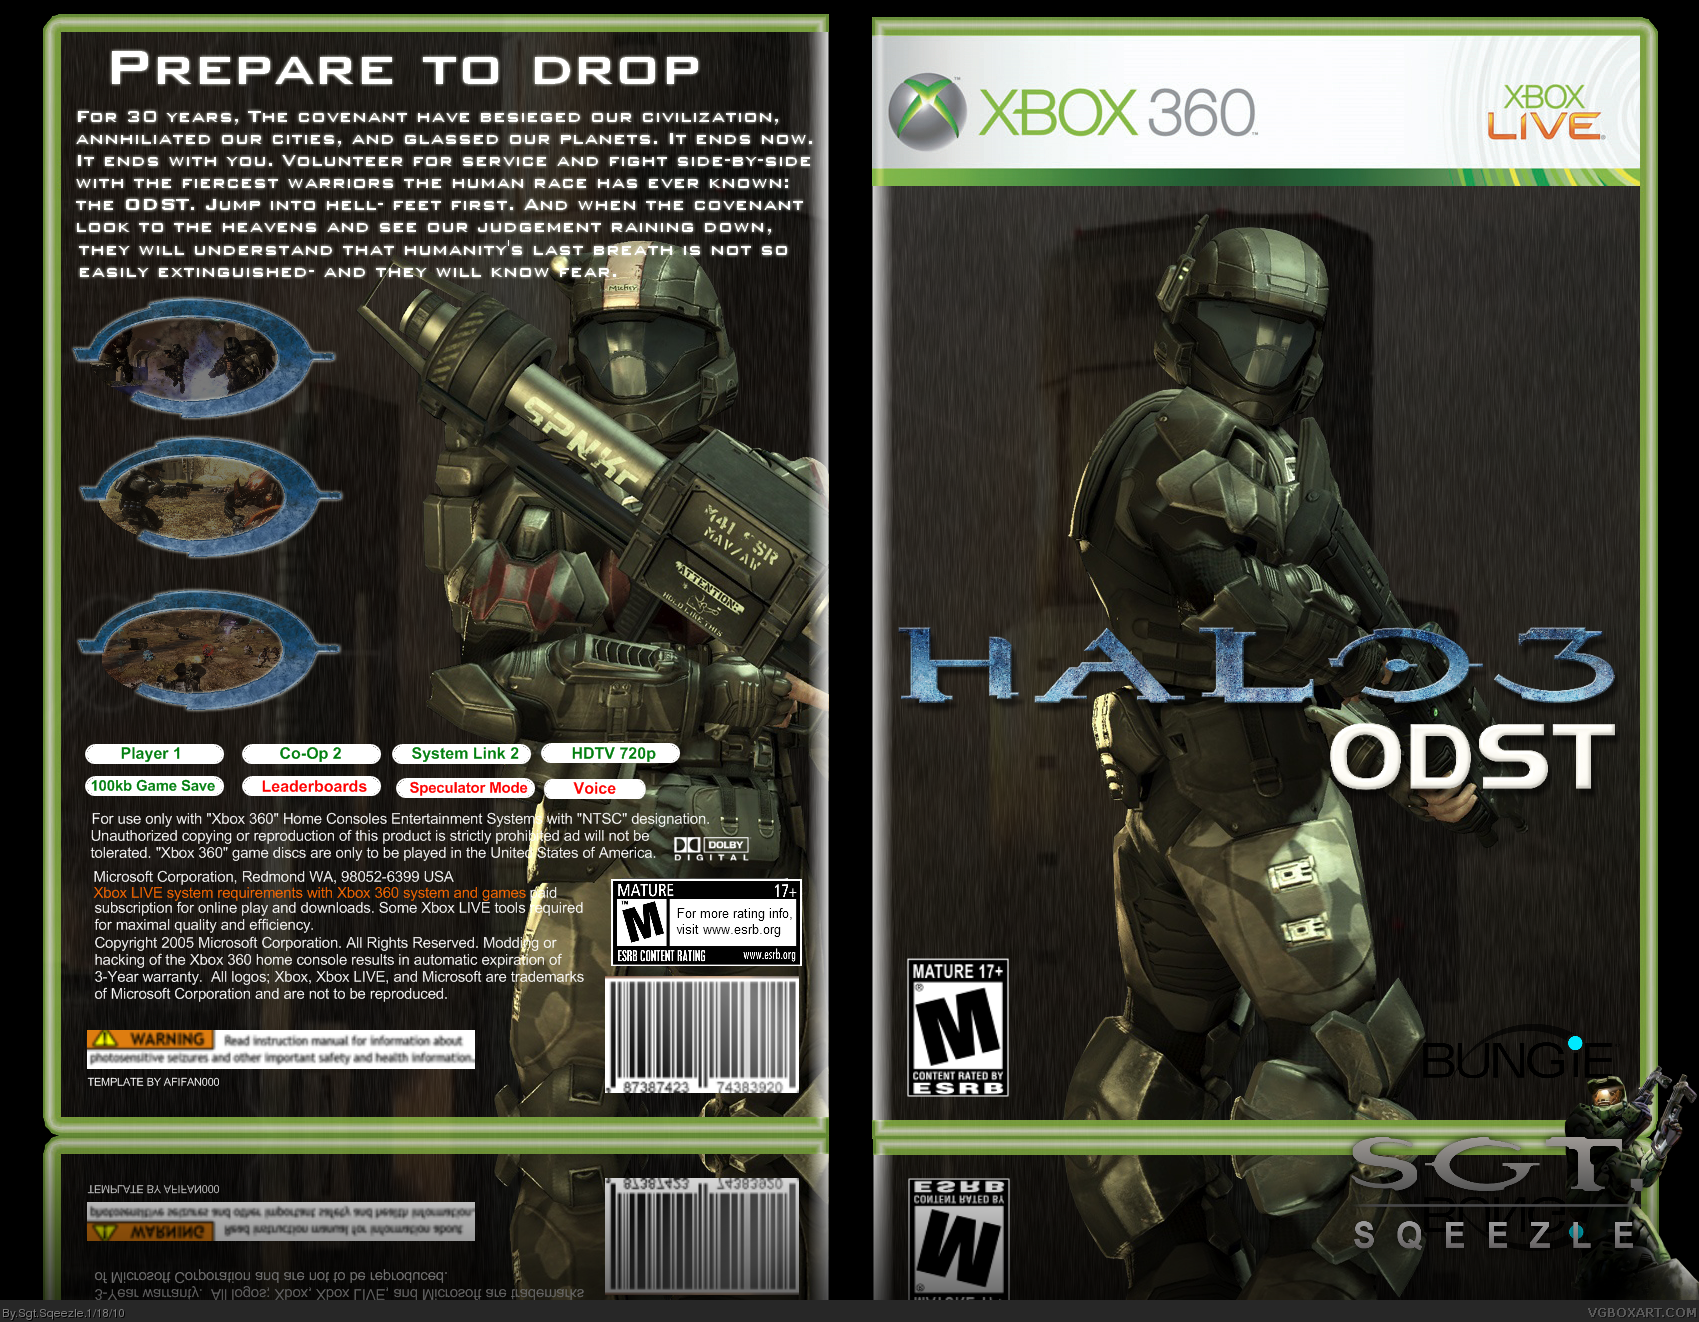 Halo 3 Odst Xbox 360 Box Art Cover By Sgt Sqeezle